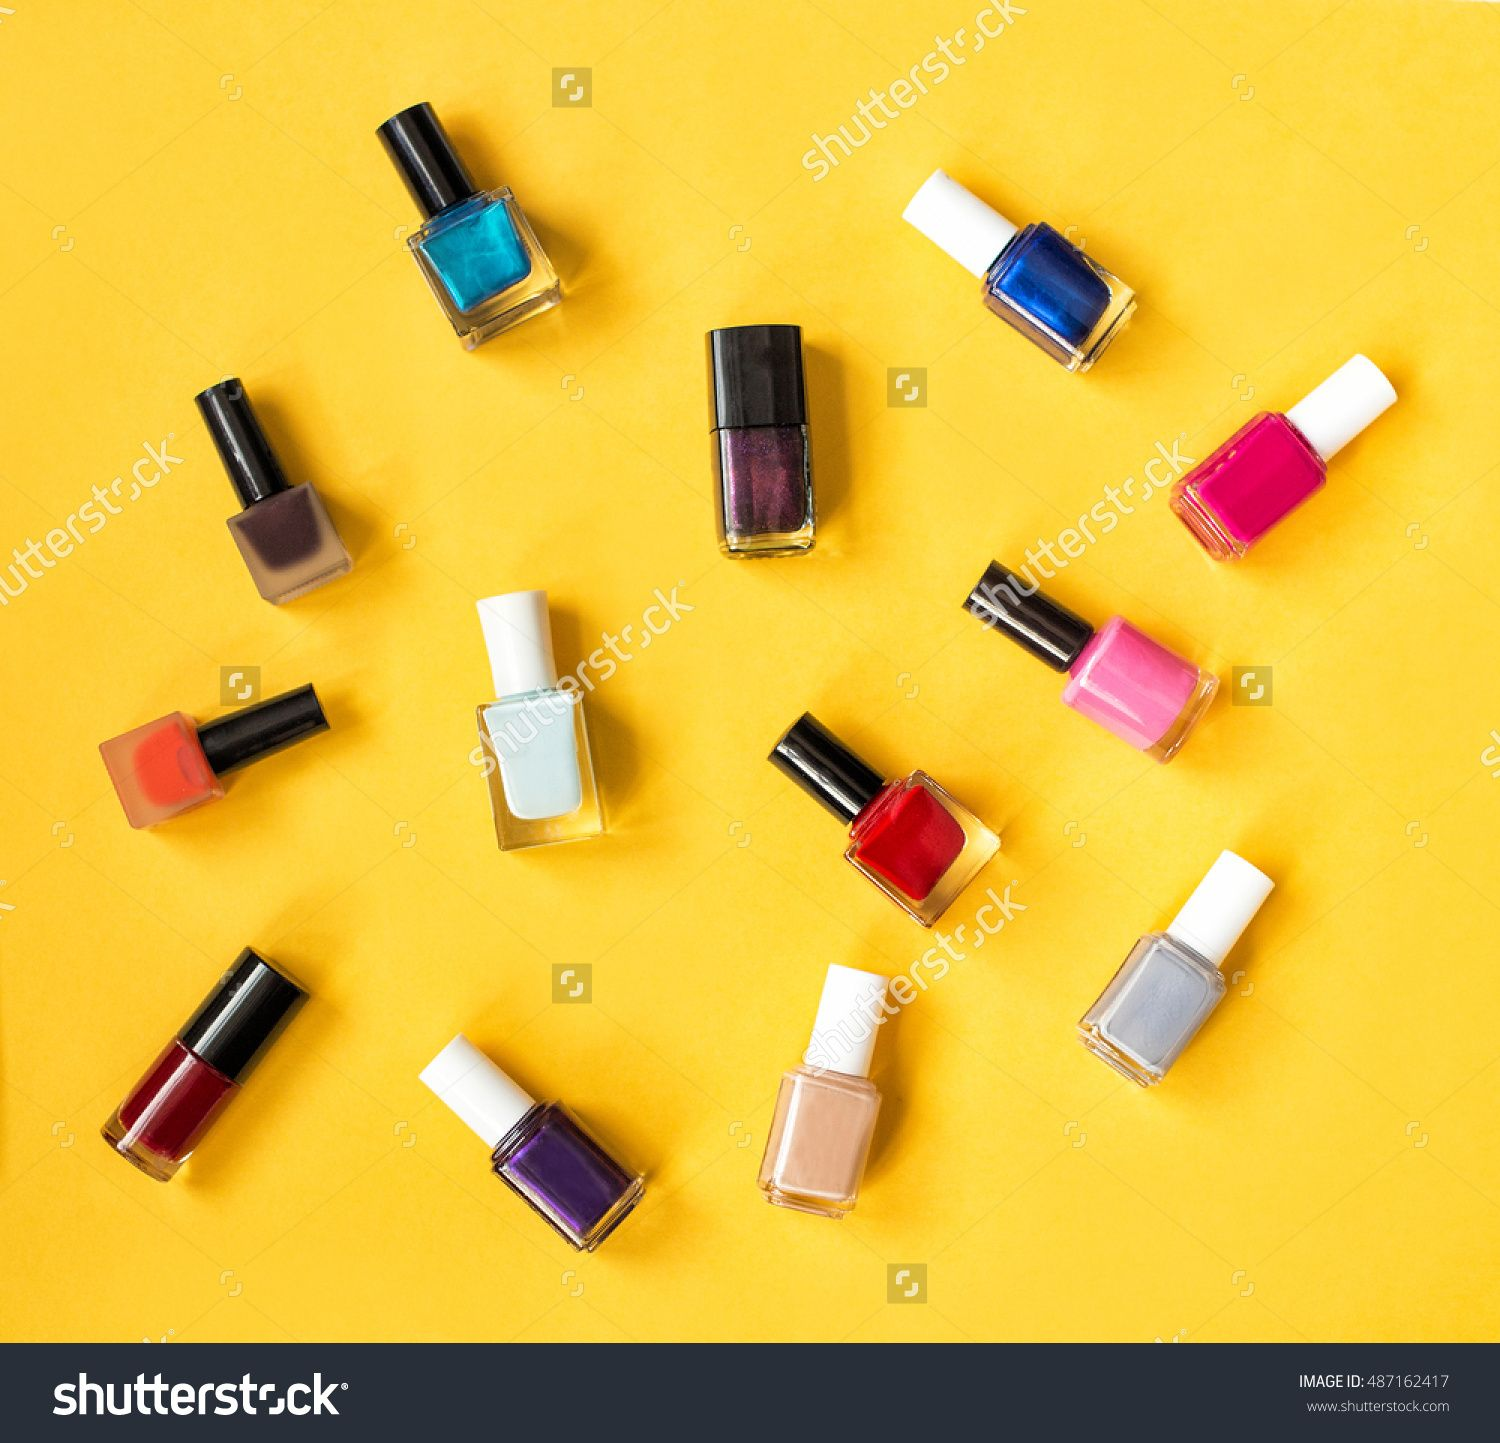 Set Of Make Up Items Of Different Colors And Shapes Isolated On Bright Yellow Background. Colorful Nail Polish Collection Studio Shot. Set Of Color Nail Paints. Stock Photo 487162417 : Shutterstock